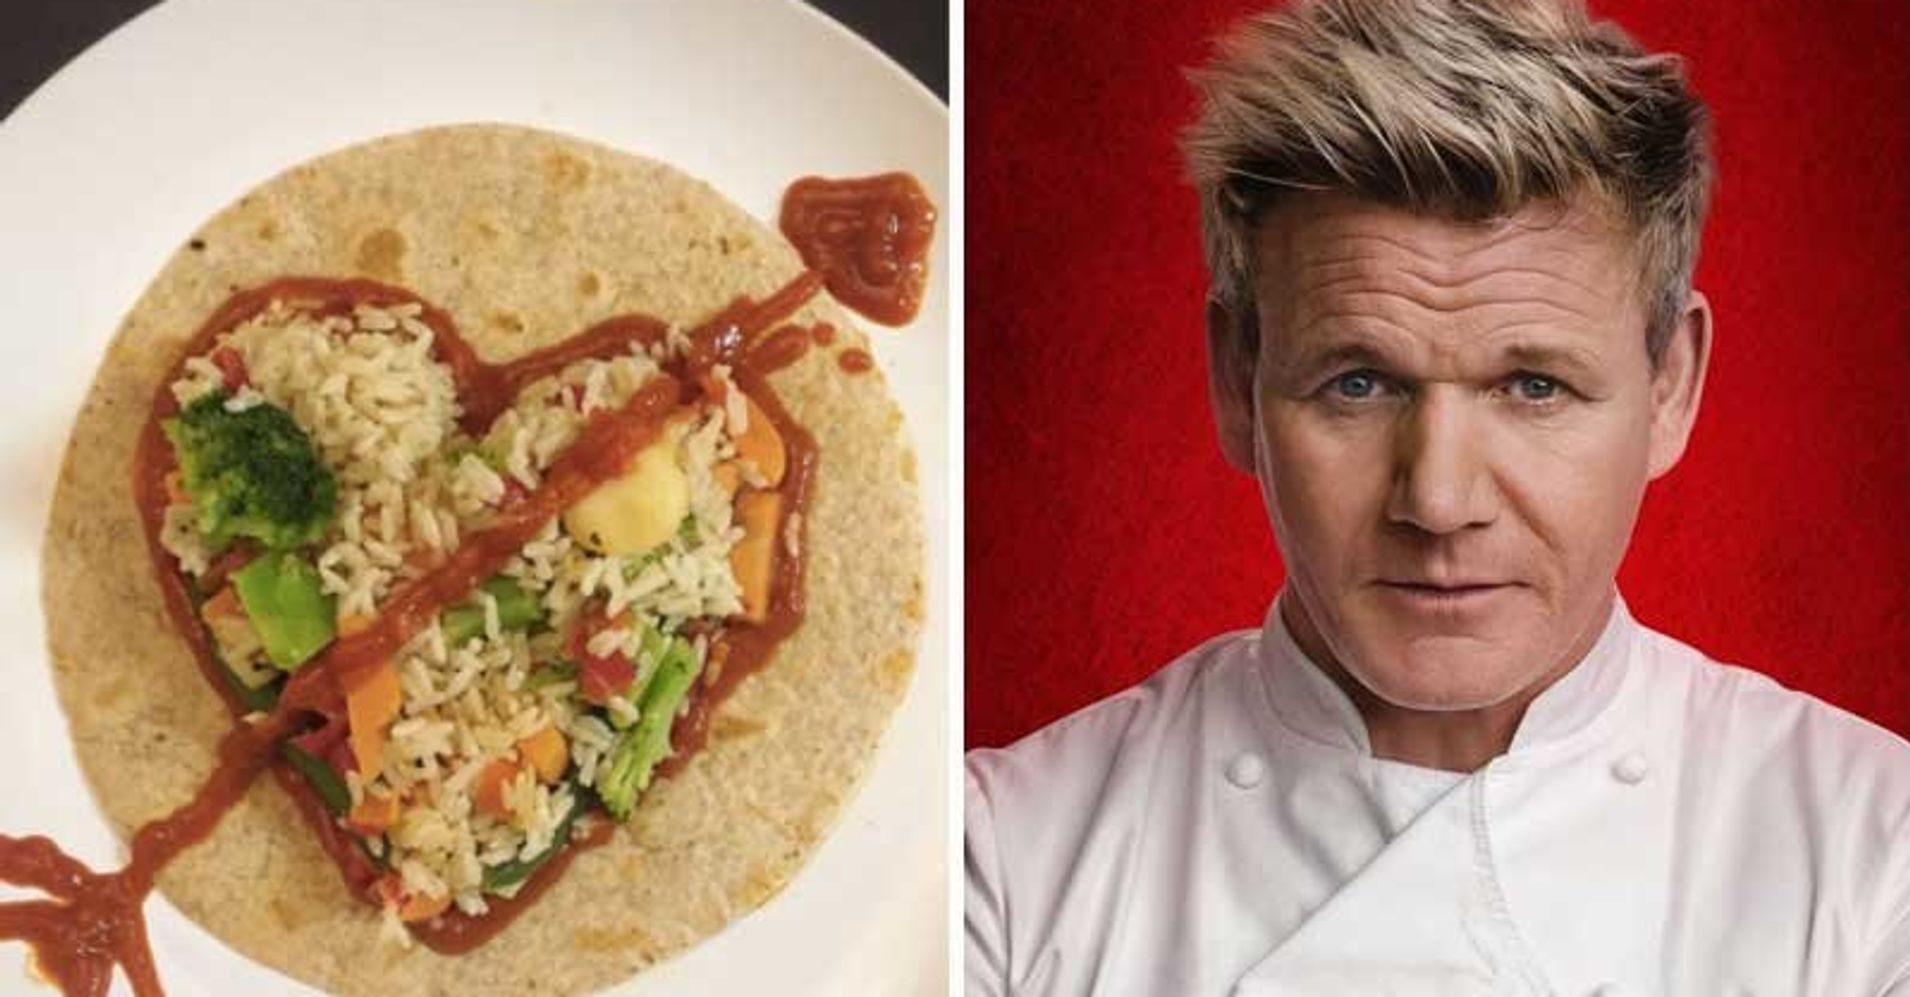 Gordon ramsay serves up savage reviews of peoples food on twitter huffpost life